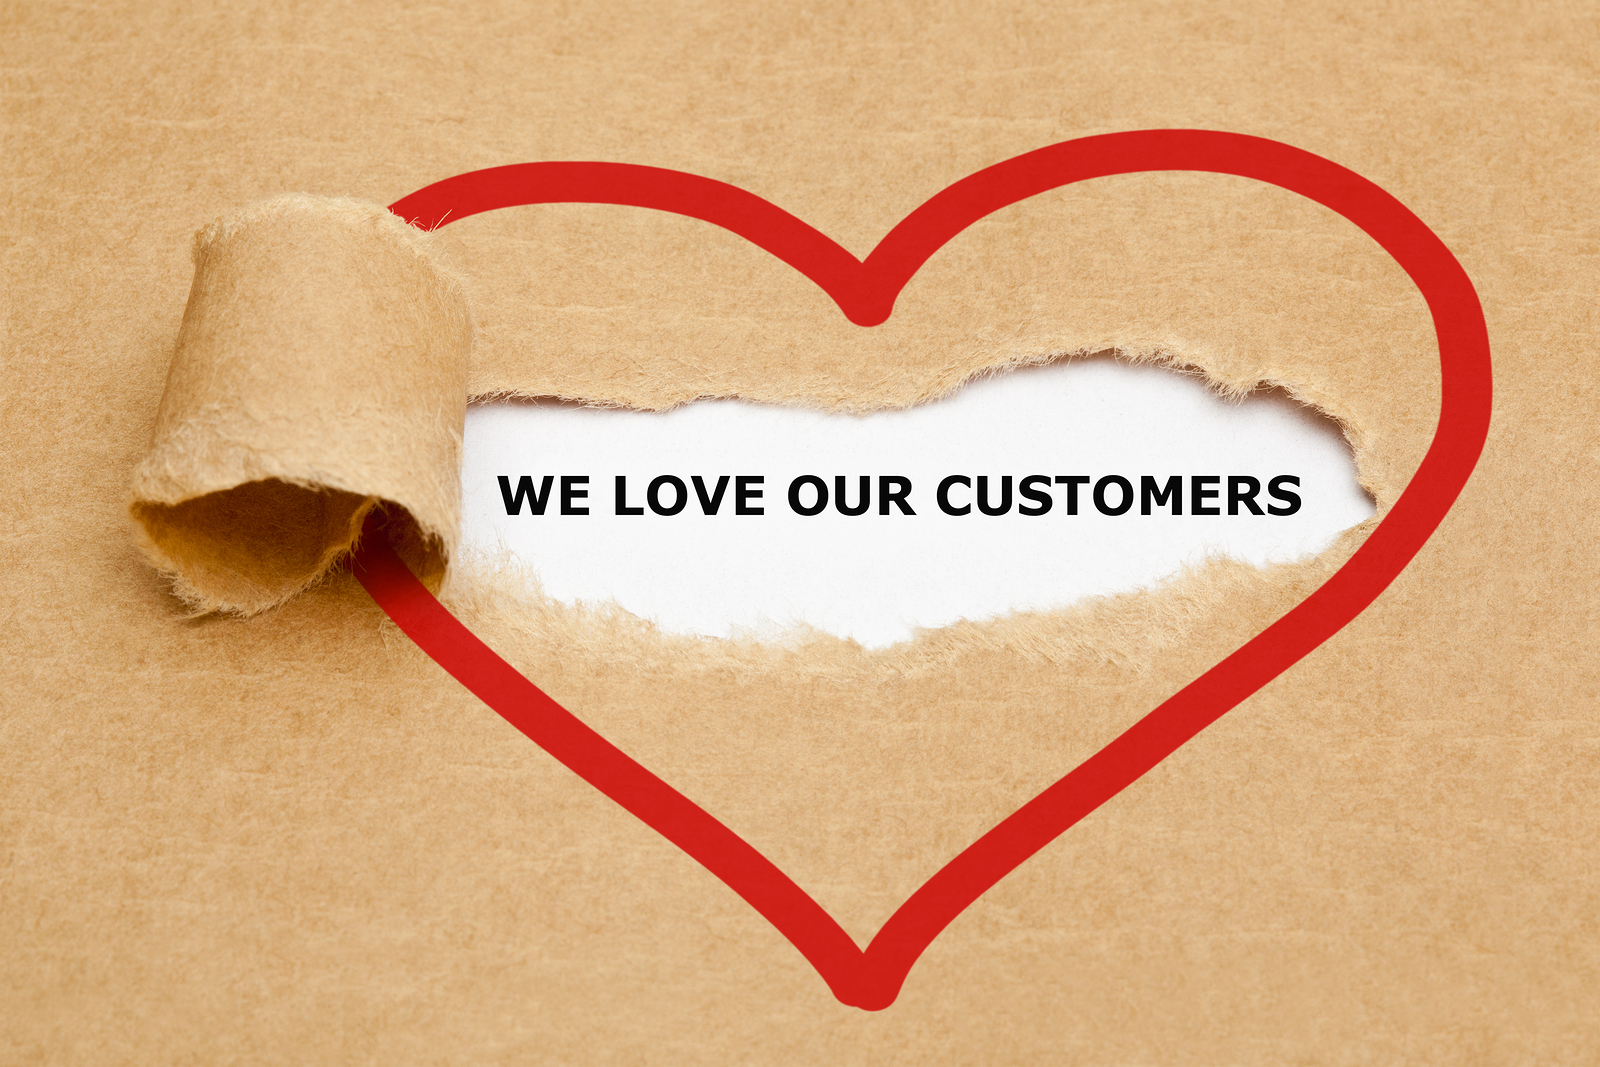 5 Ways to Improve Customer Loyalty